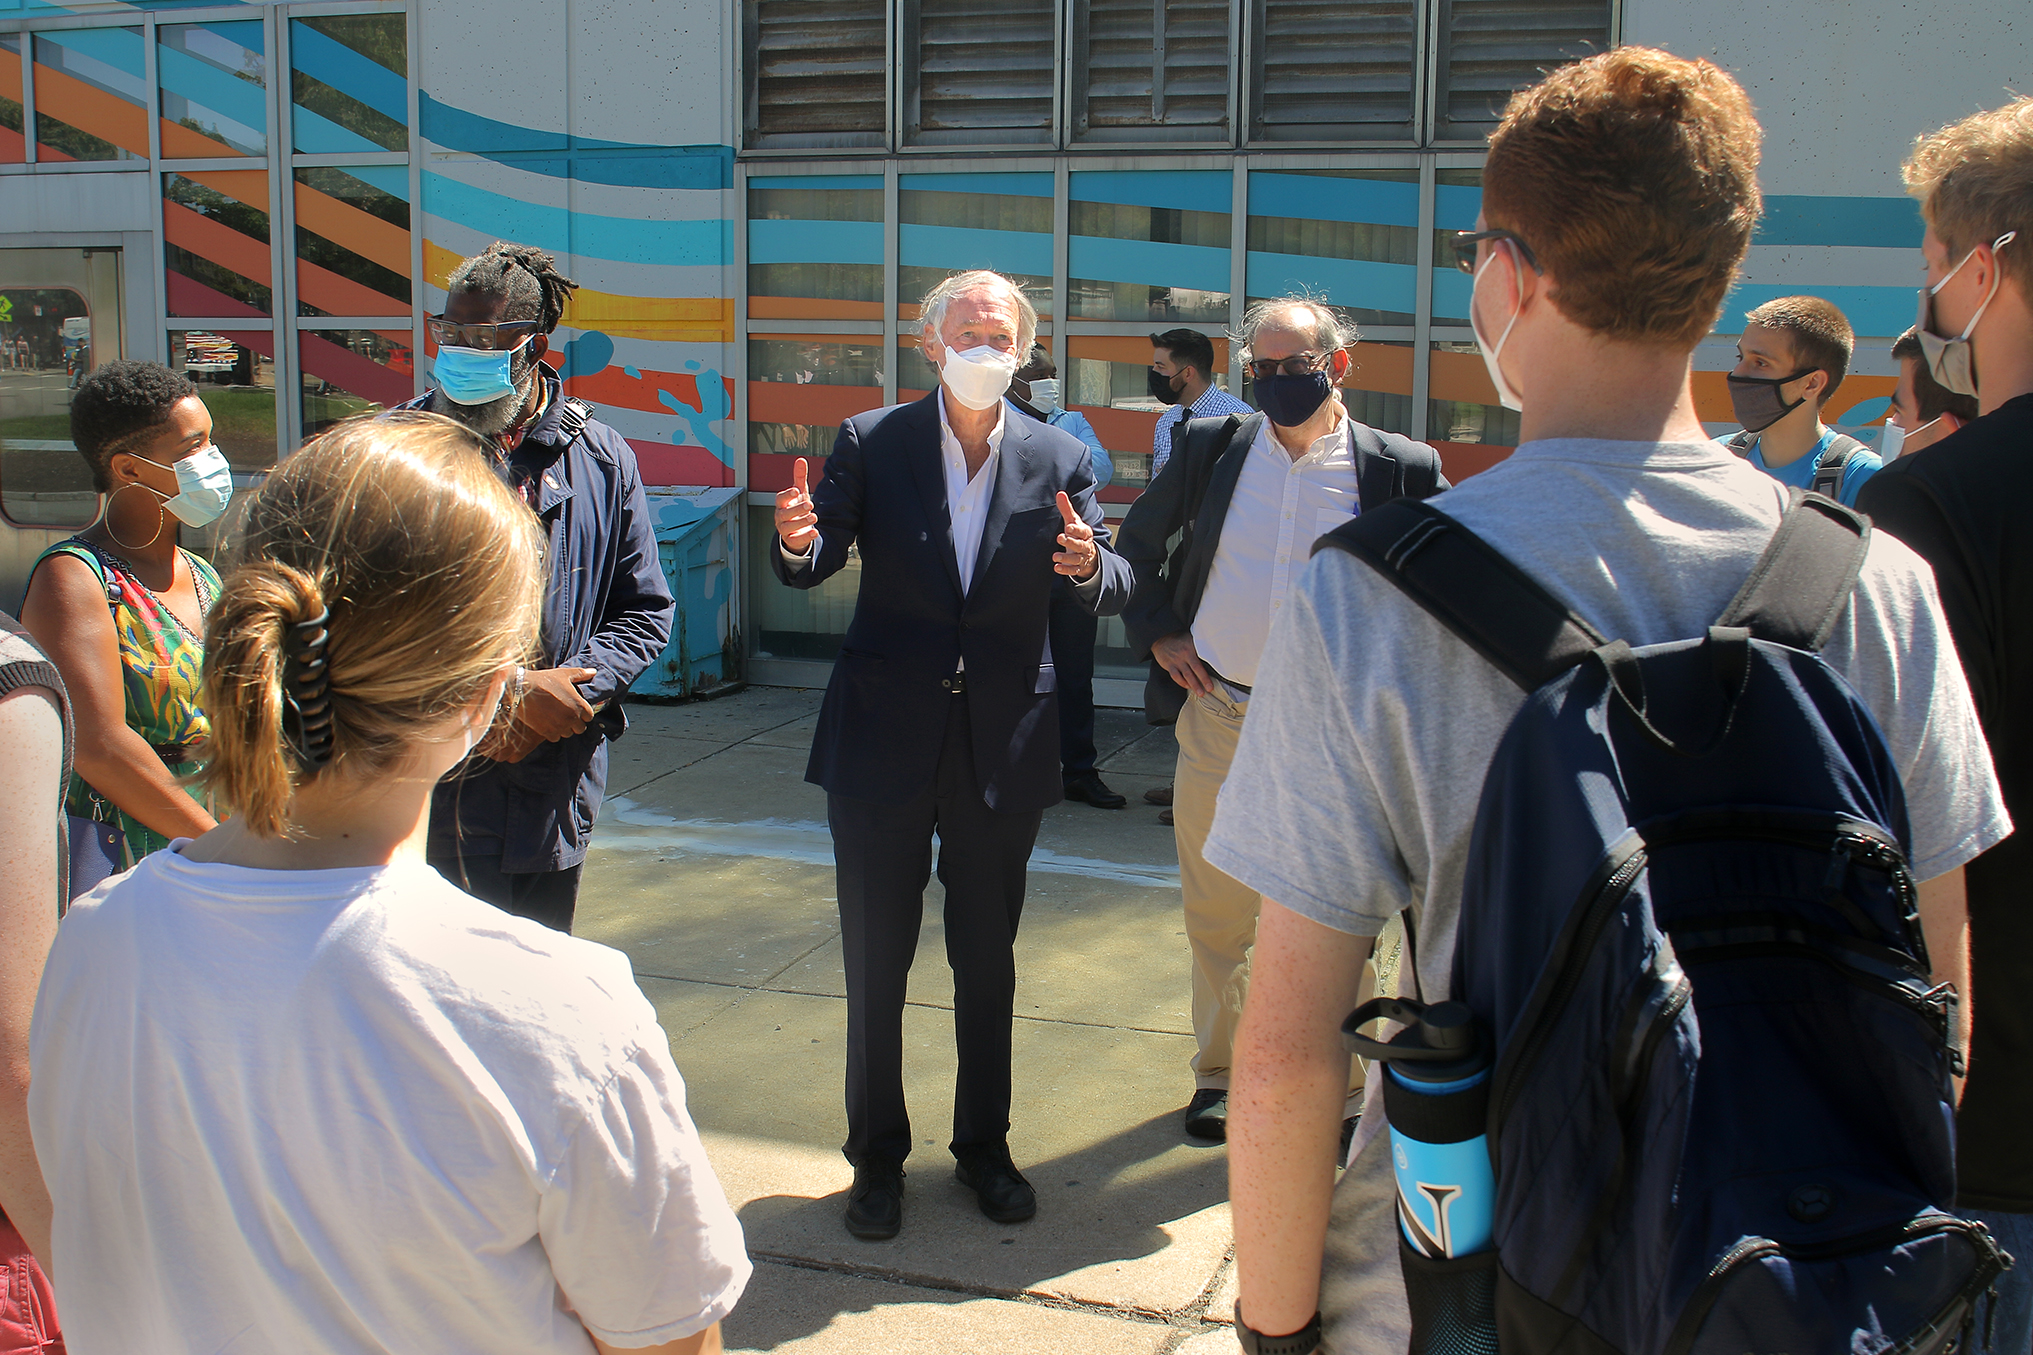 Boston, MA - 09/07/21 -  Senator Ed Markey, along with transportation and environment activists, advocated at a press conference outside Ruggles MBTA station on the Orange Line for more and faster spending on climate resiliency for infrastructure.